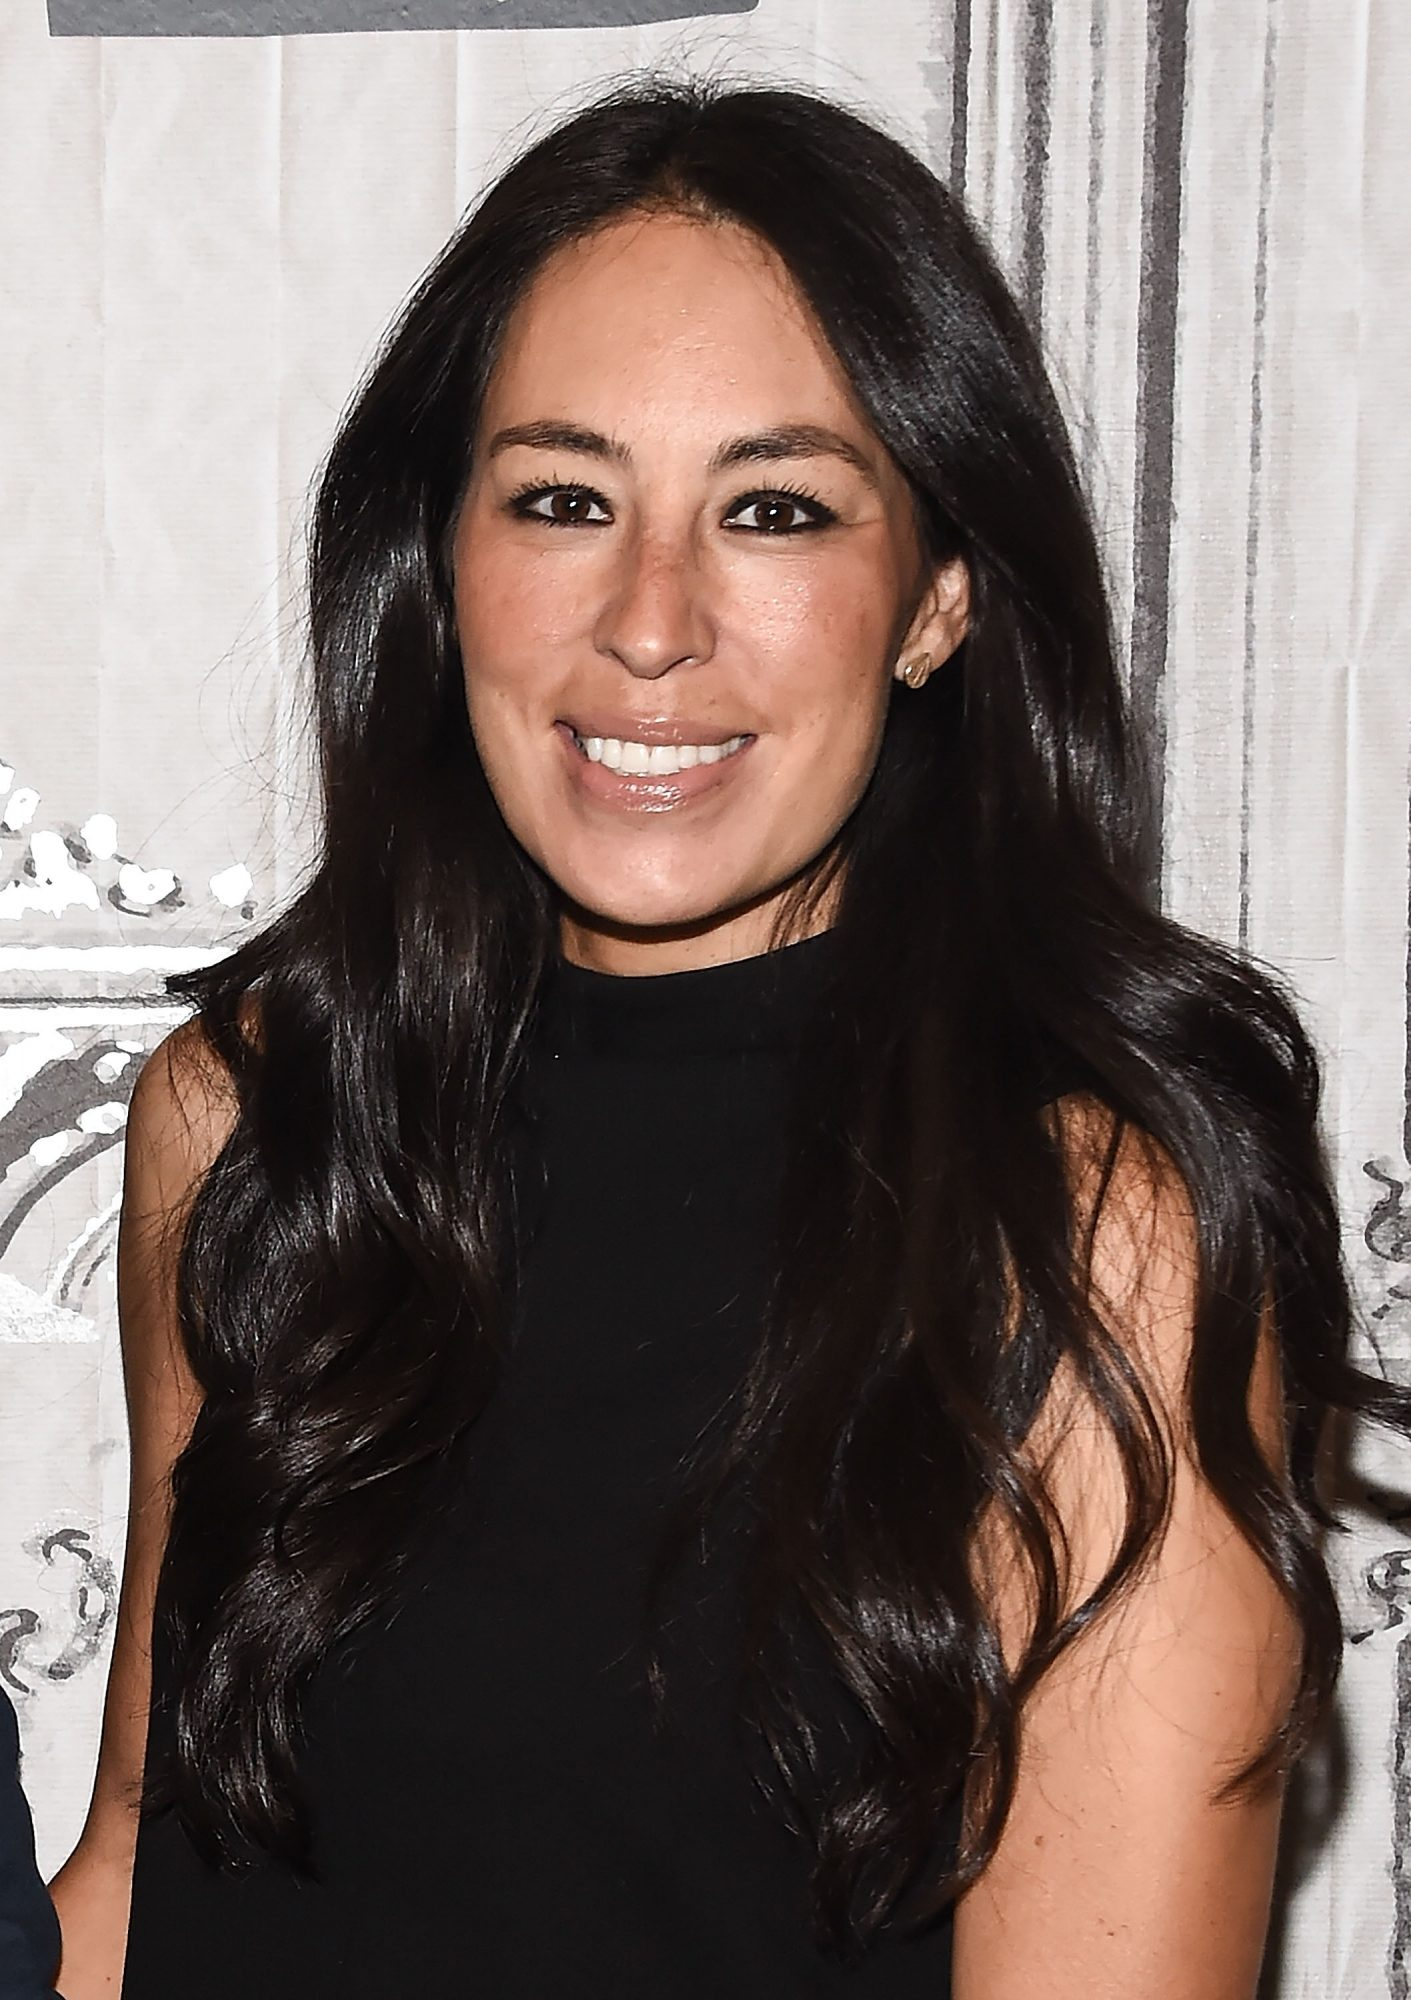 joanna-gaines-accessory